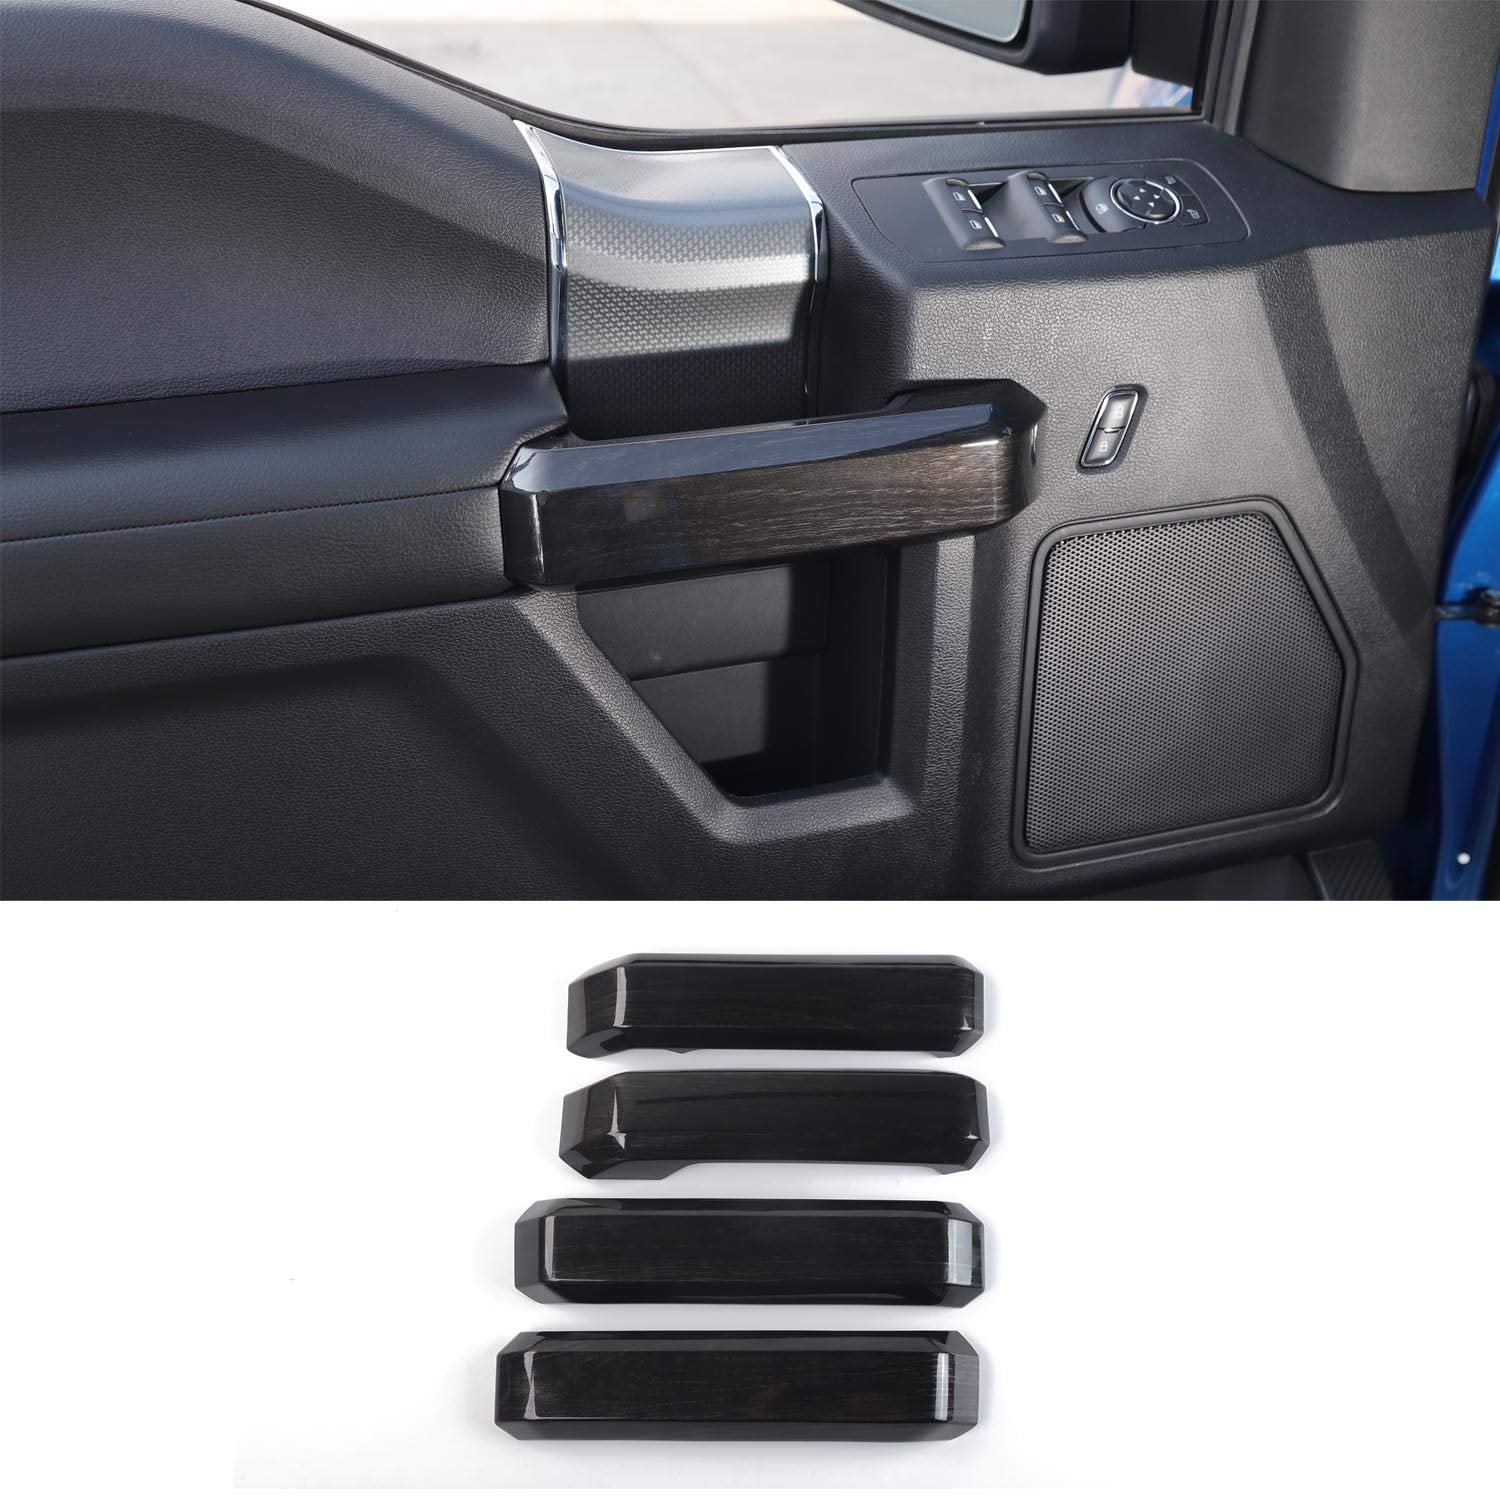 Voodonala Black Grain Side Dashboard Panel Outlet Vent Covers Trim for Ford F150 2015 2016 2017